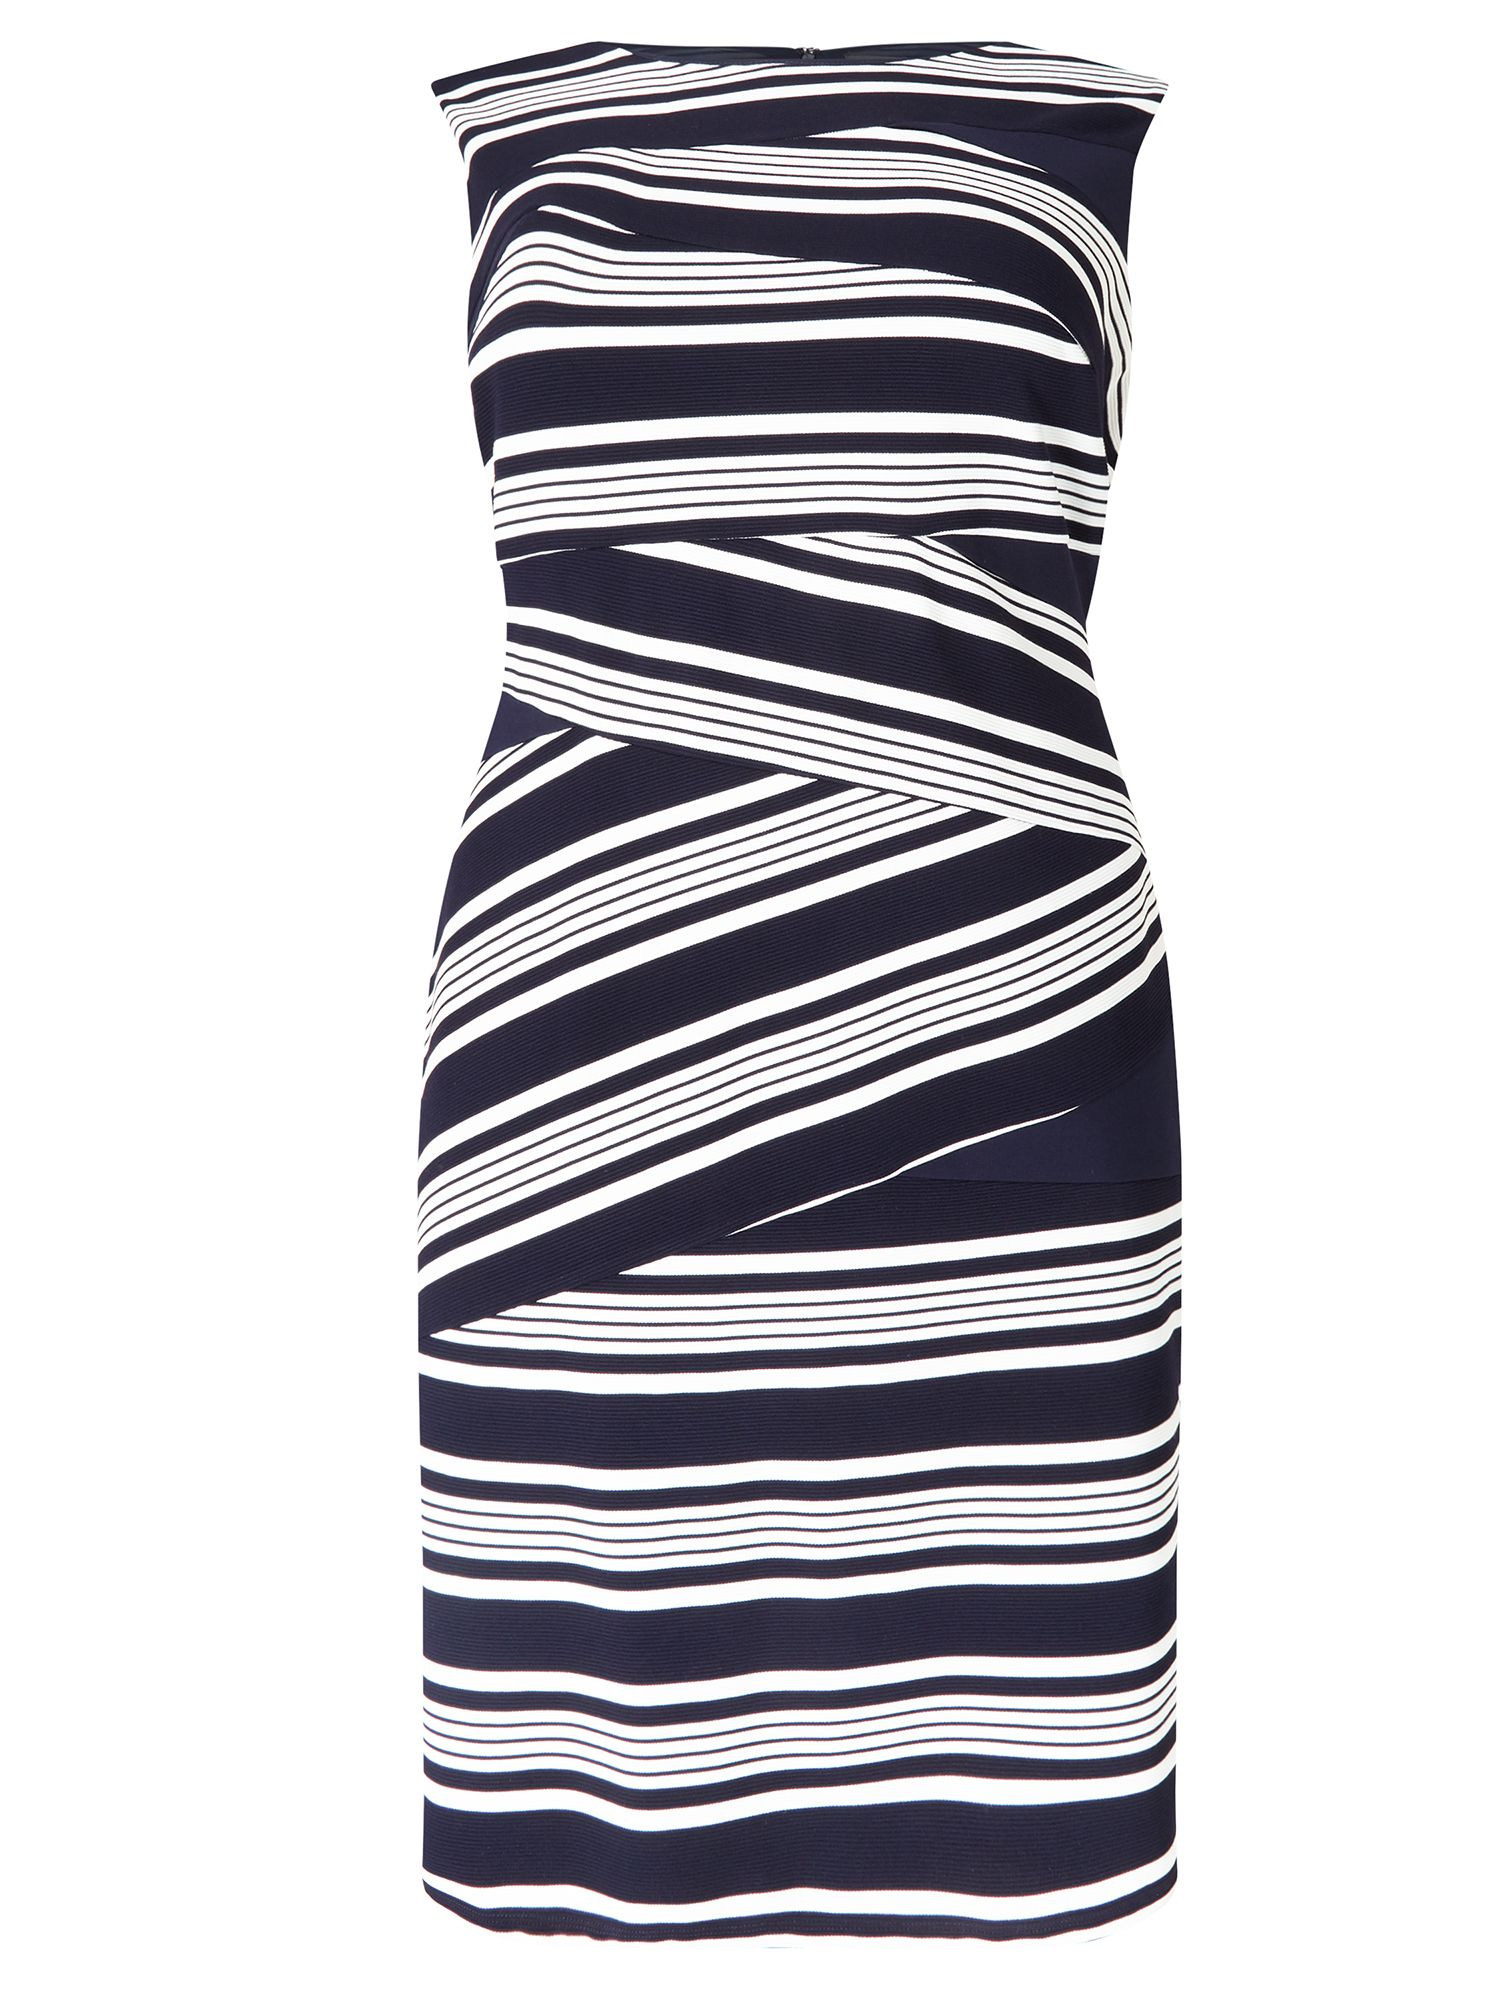 Adrianna Papell Stripe Sheath Dress, Multi-Coloured